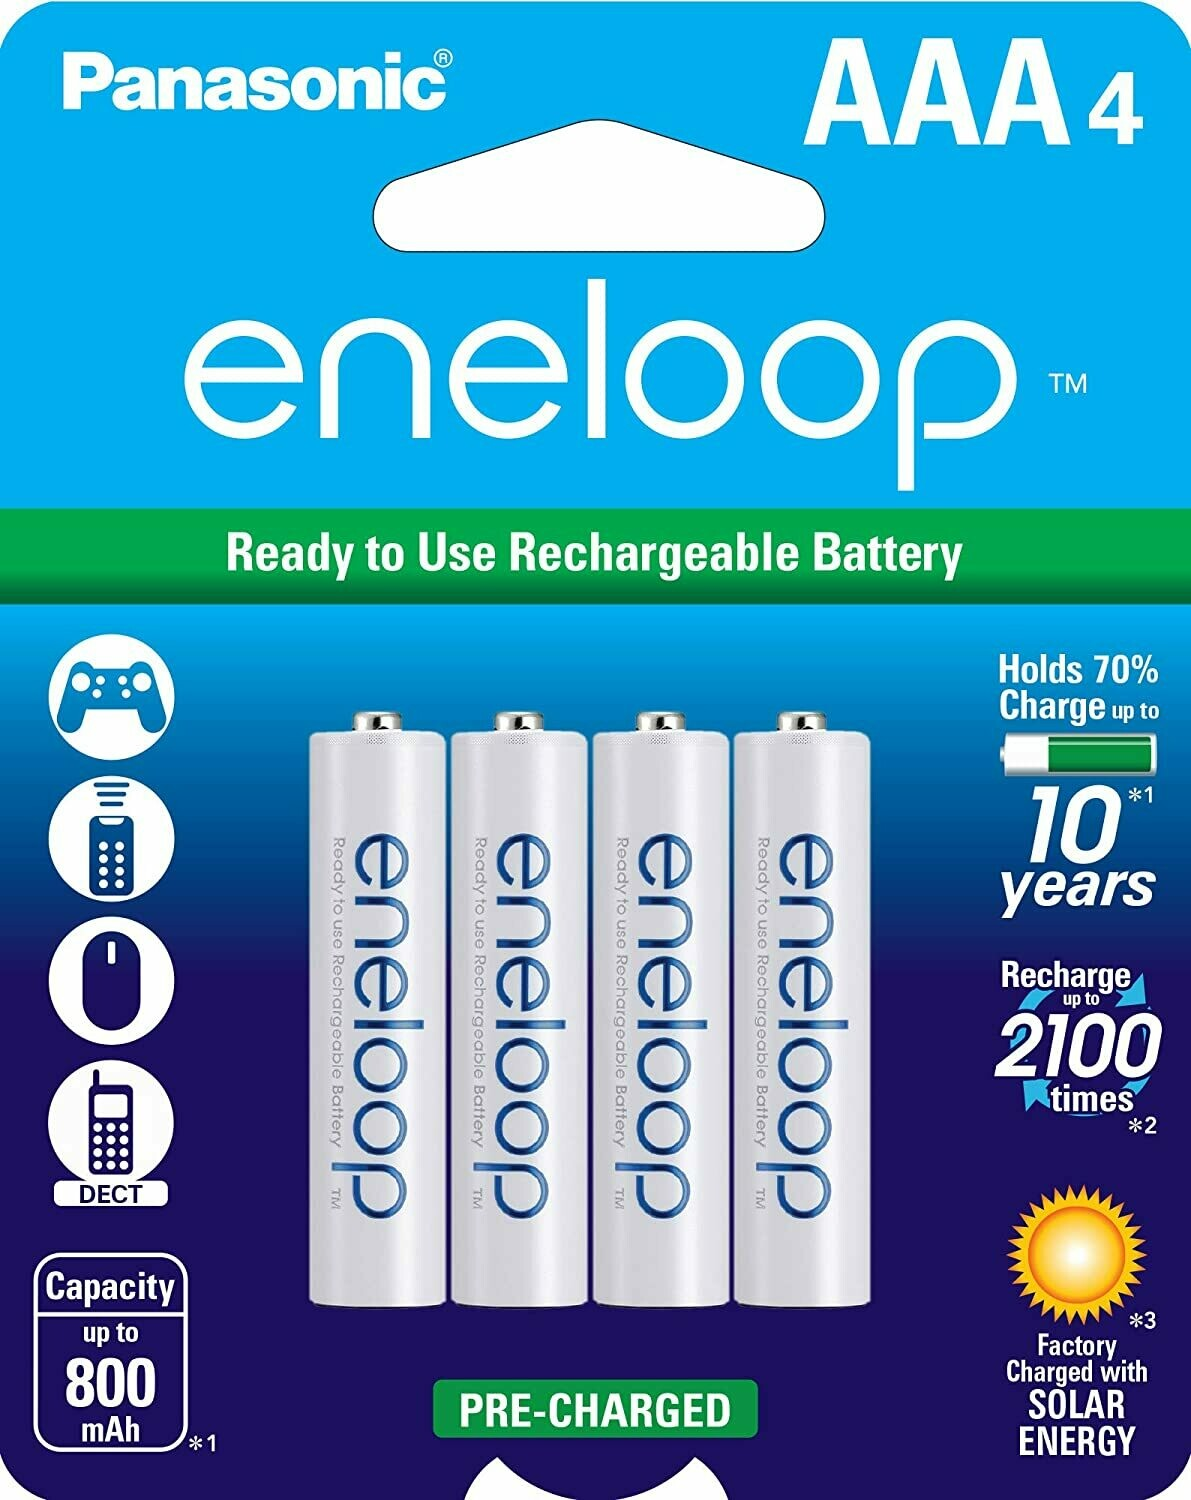 Panasonic eneloop AAA Charged Rechargeable Batteries, Pack of 4